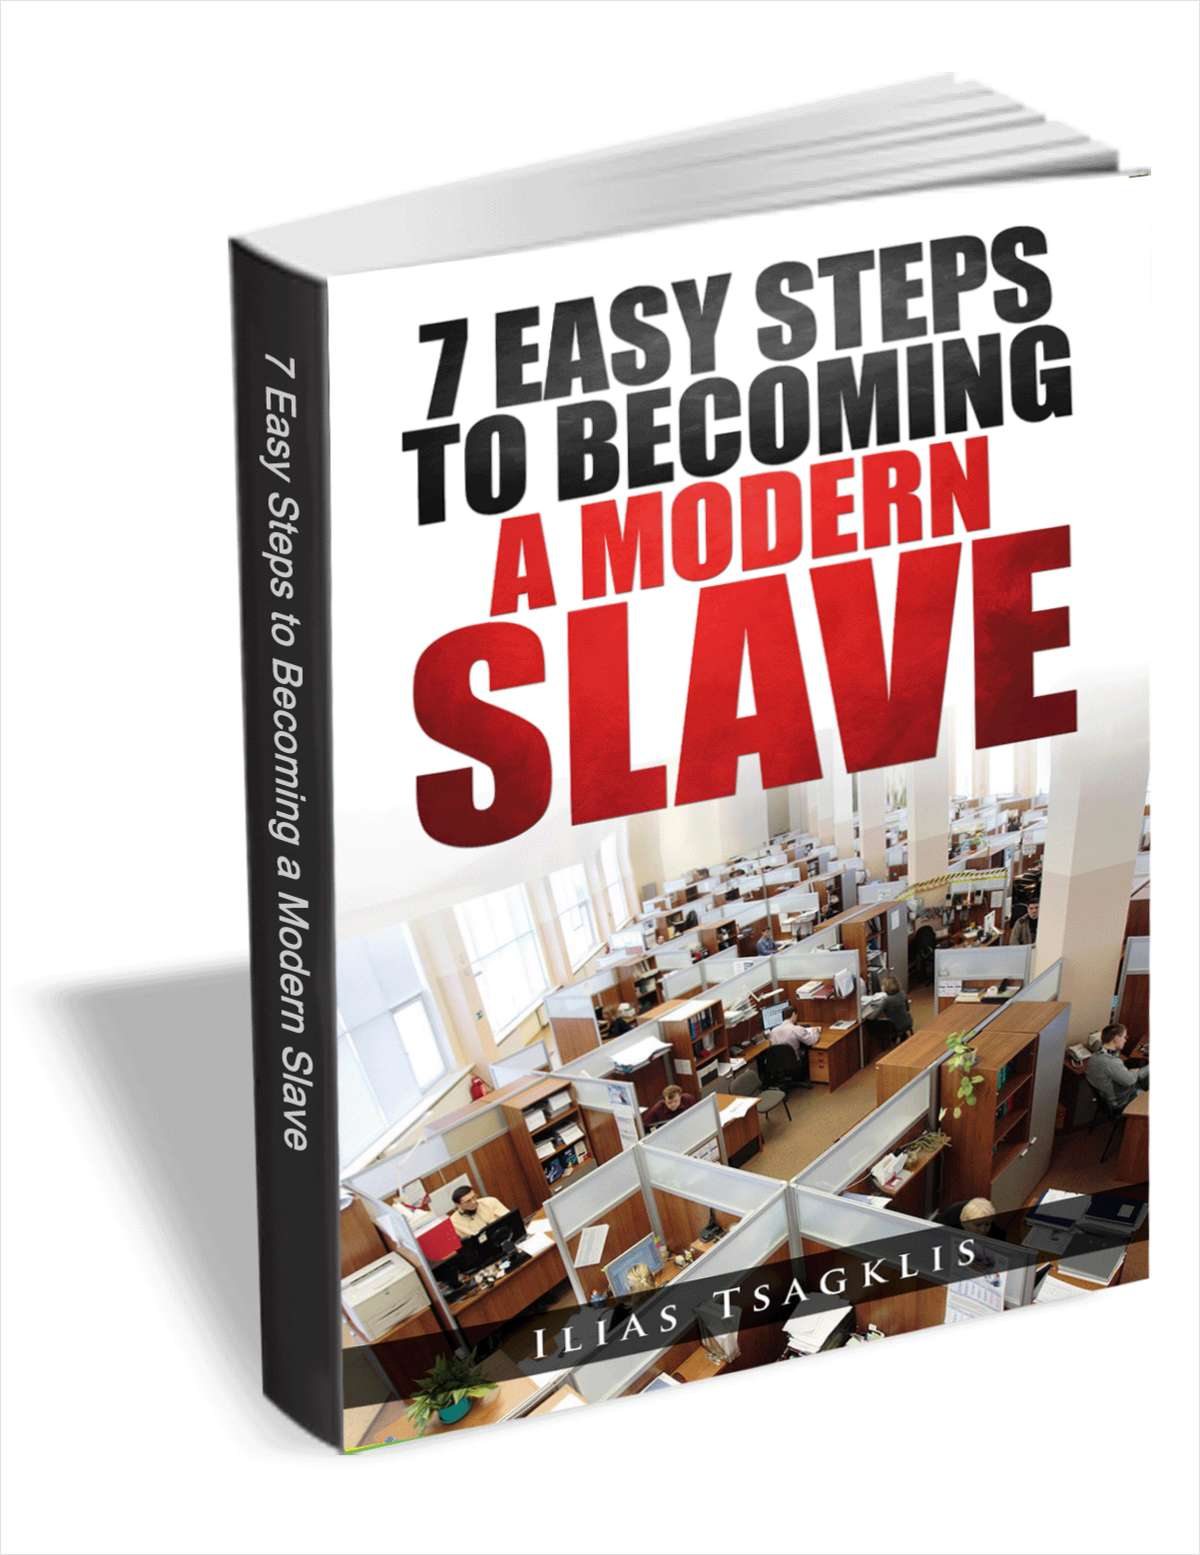 7 Easy Steps to Becoming a Modern Slave